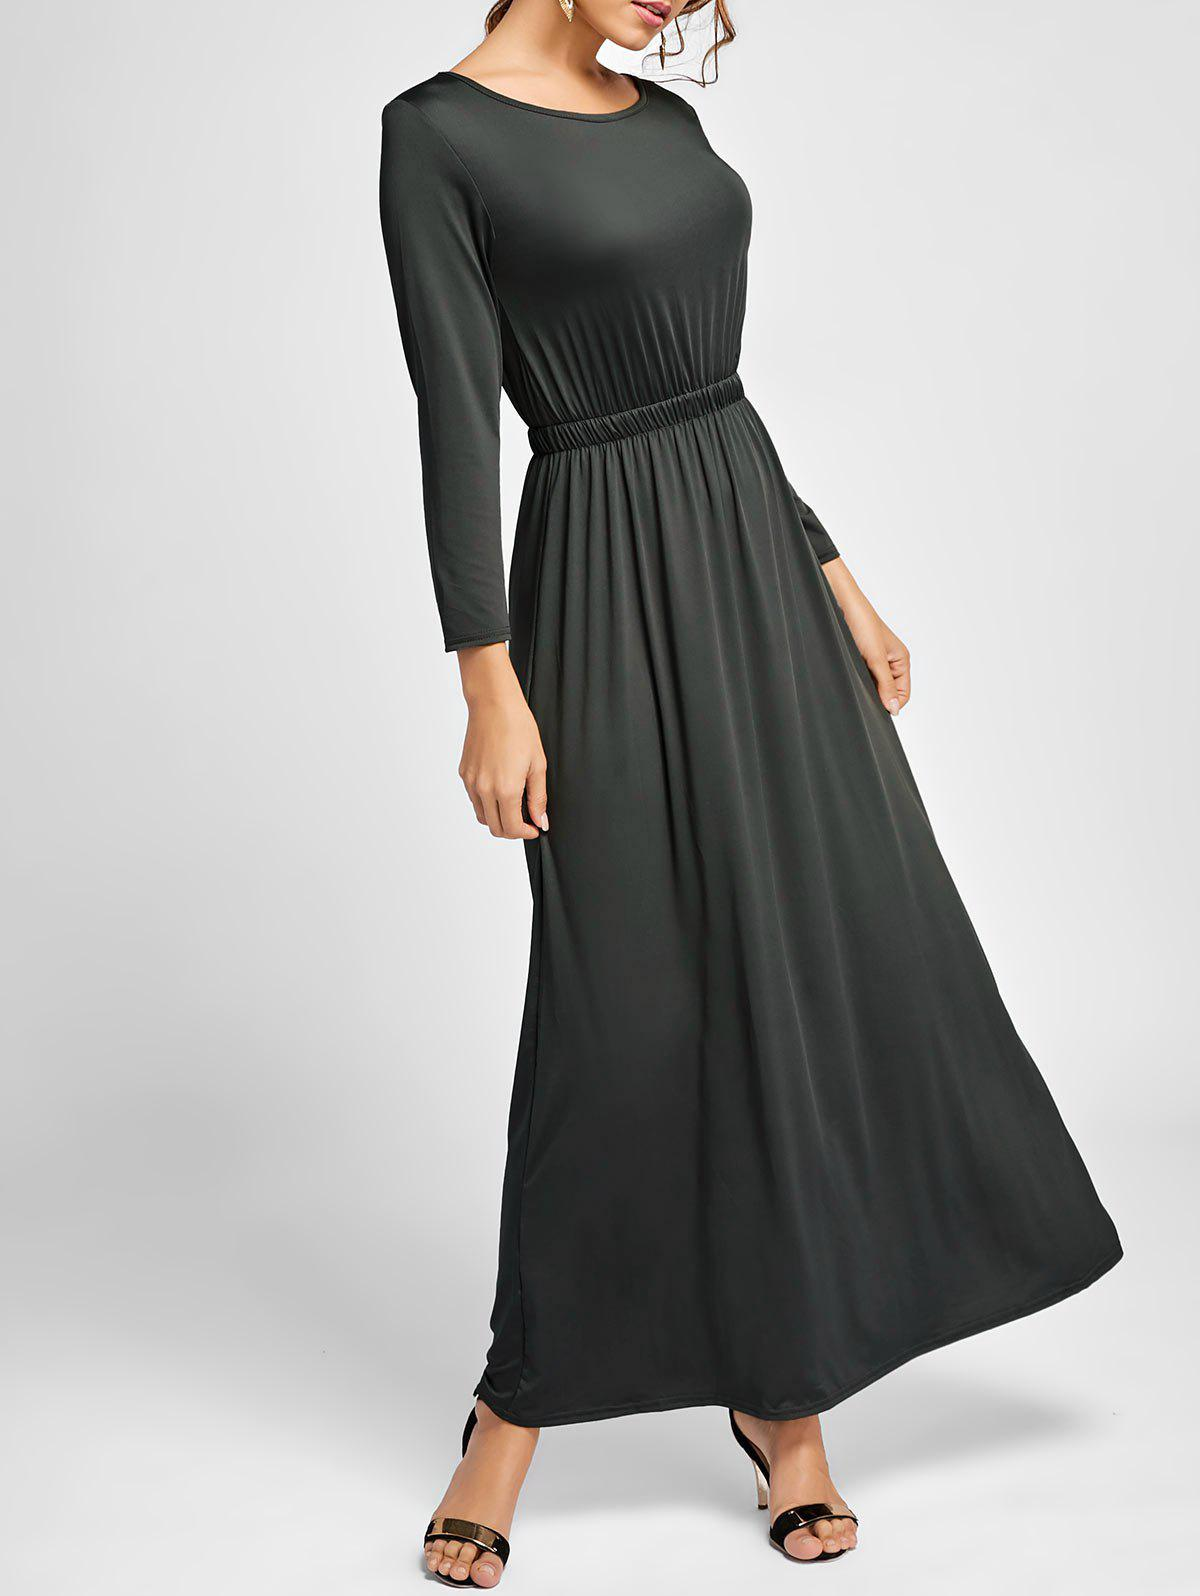 b9cc1c7cf60a 2019 Long Sleeve Maxi Flowy Dress